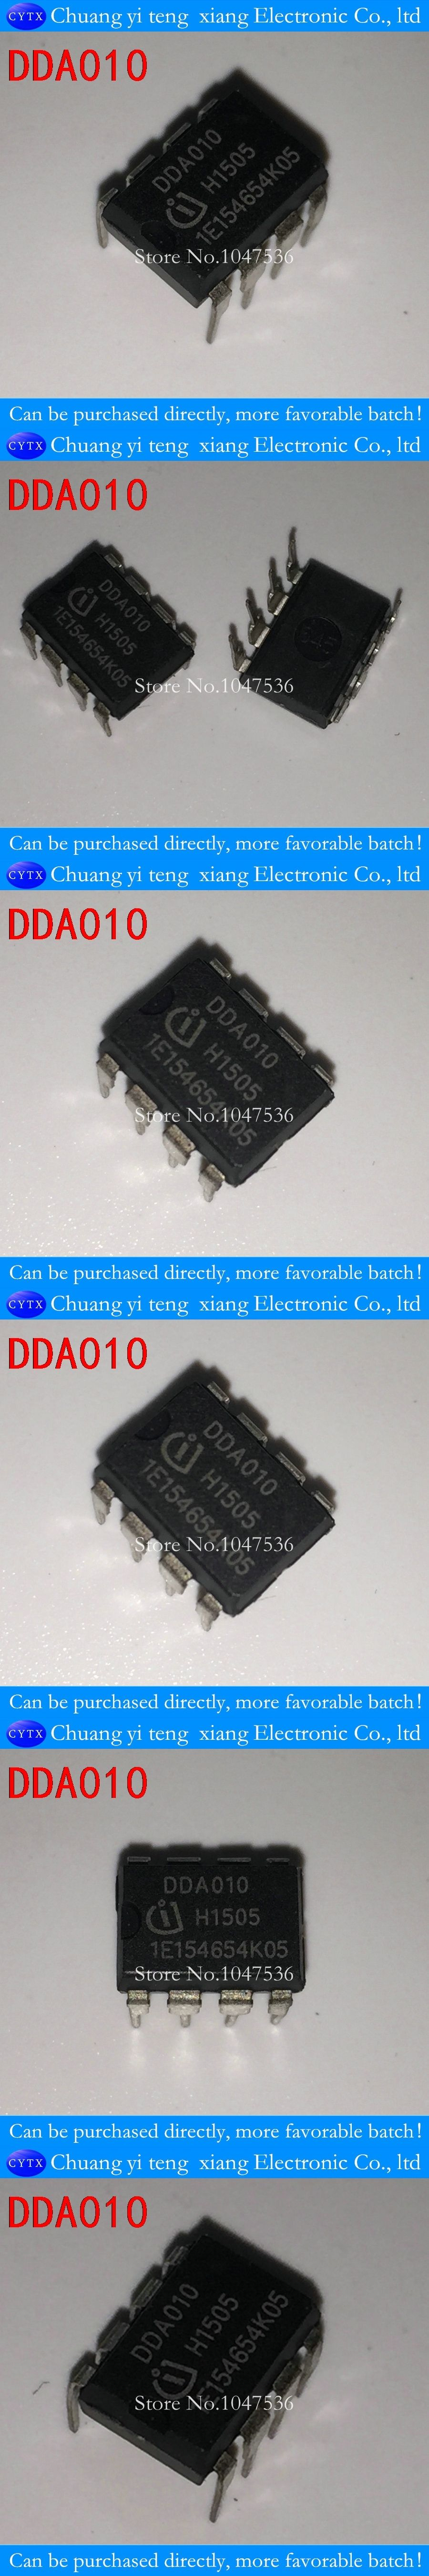 Dda010 Dip8 Management Chip Ic Integrated Circuit 20pcs Lot Active Icintegrated Component Electronic